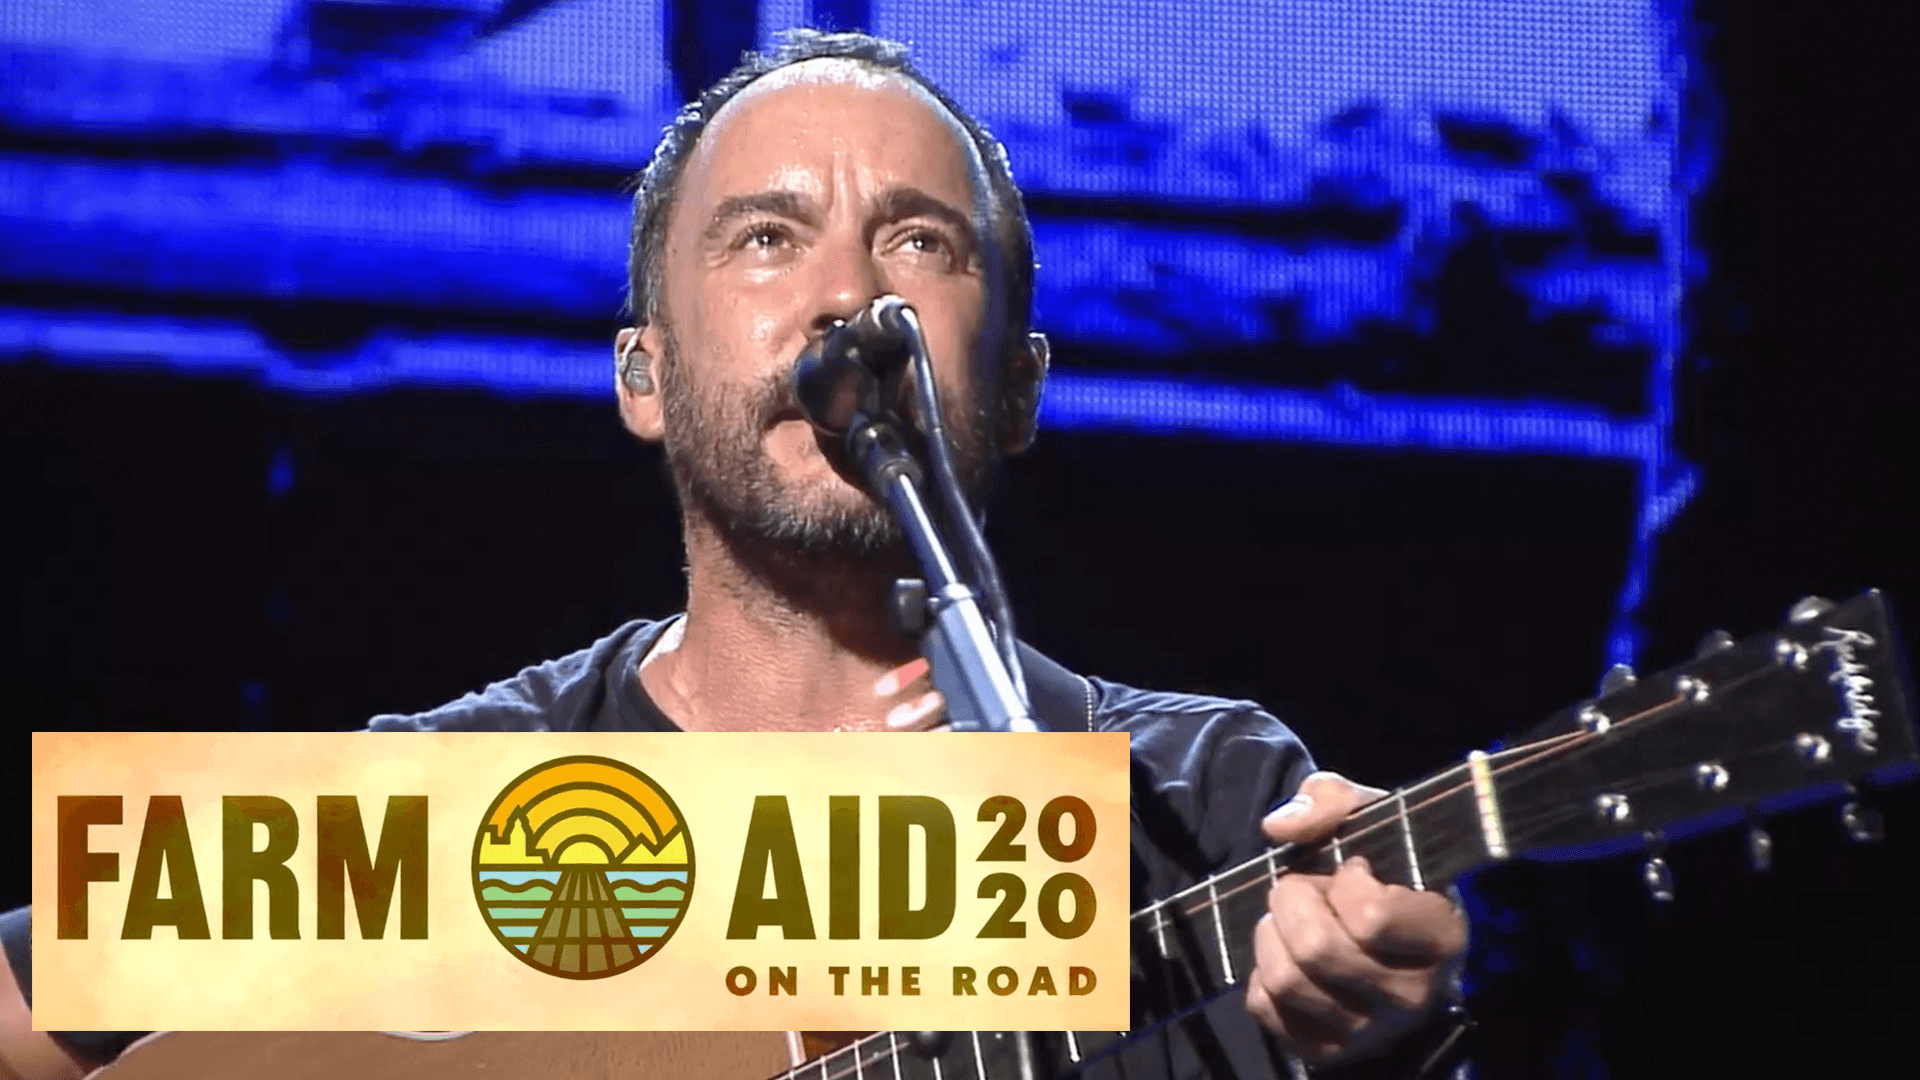 Farm Aid On The Road | September 26th on AXS TV